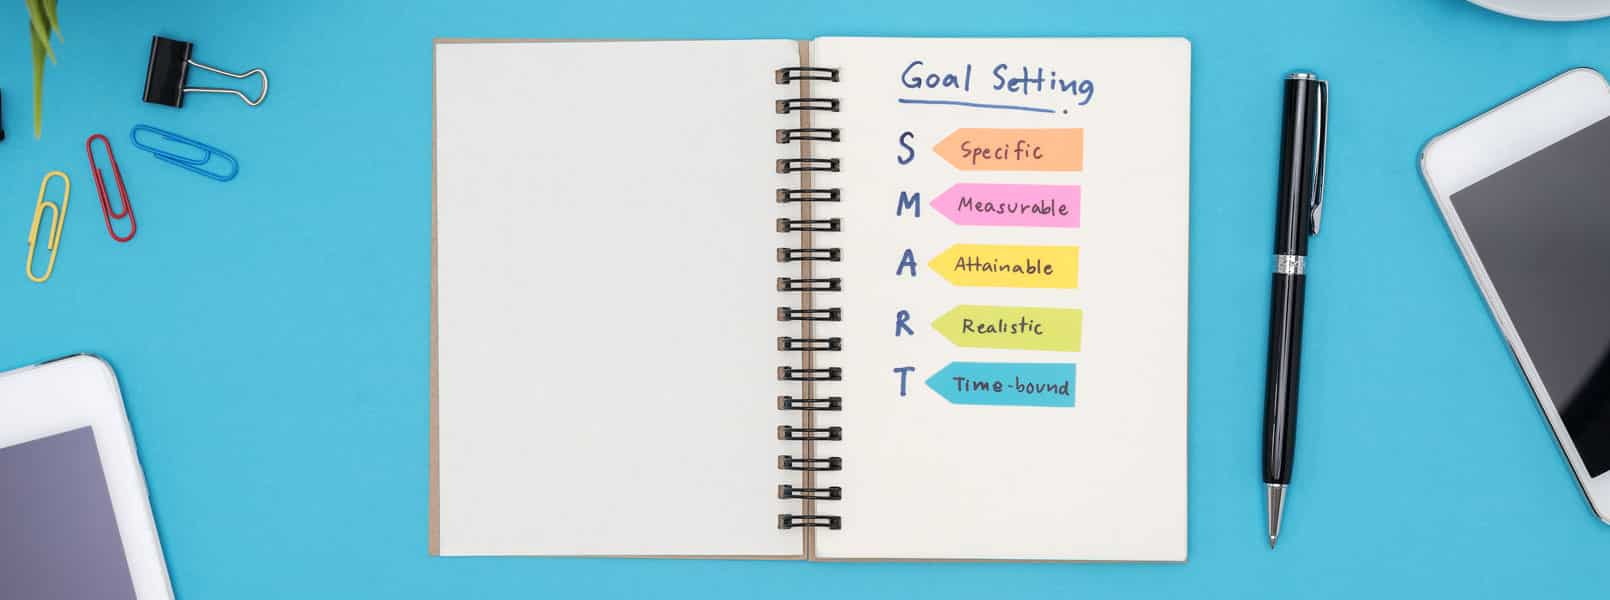 Goal-setting planner with an outline of the SMART goal strategy